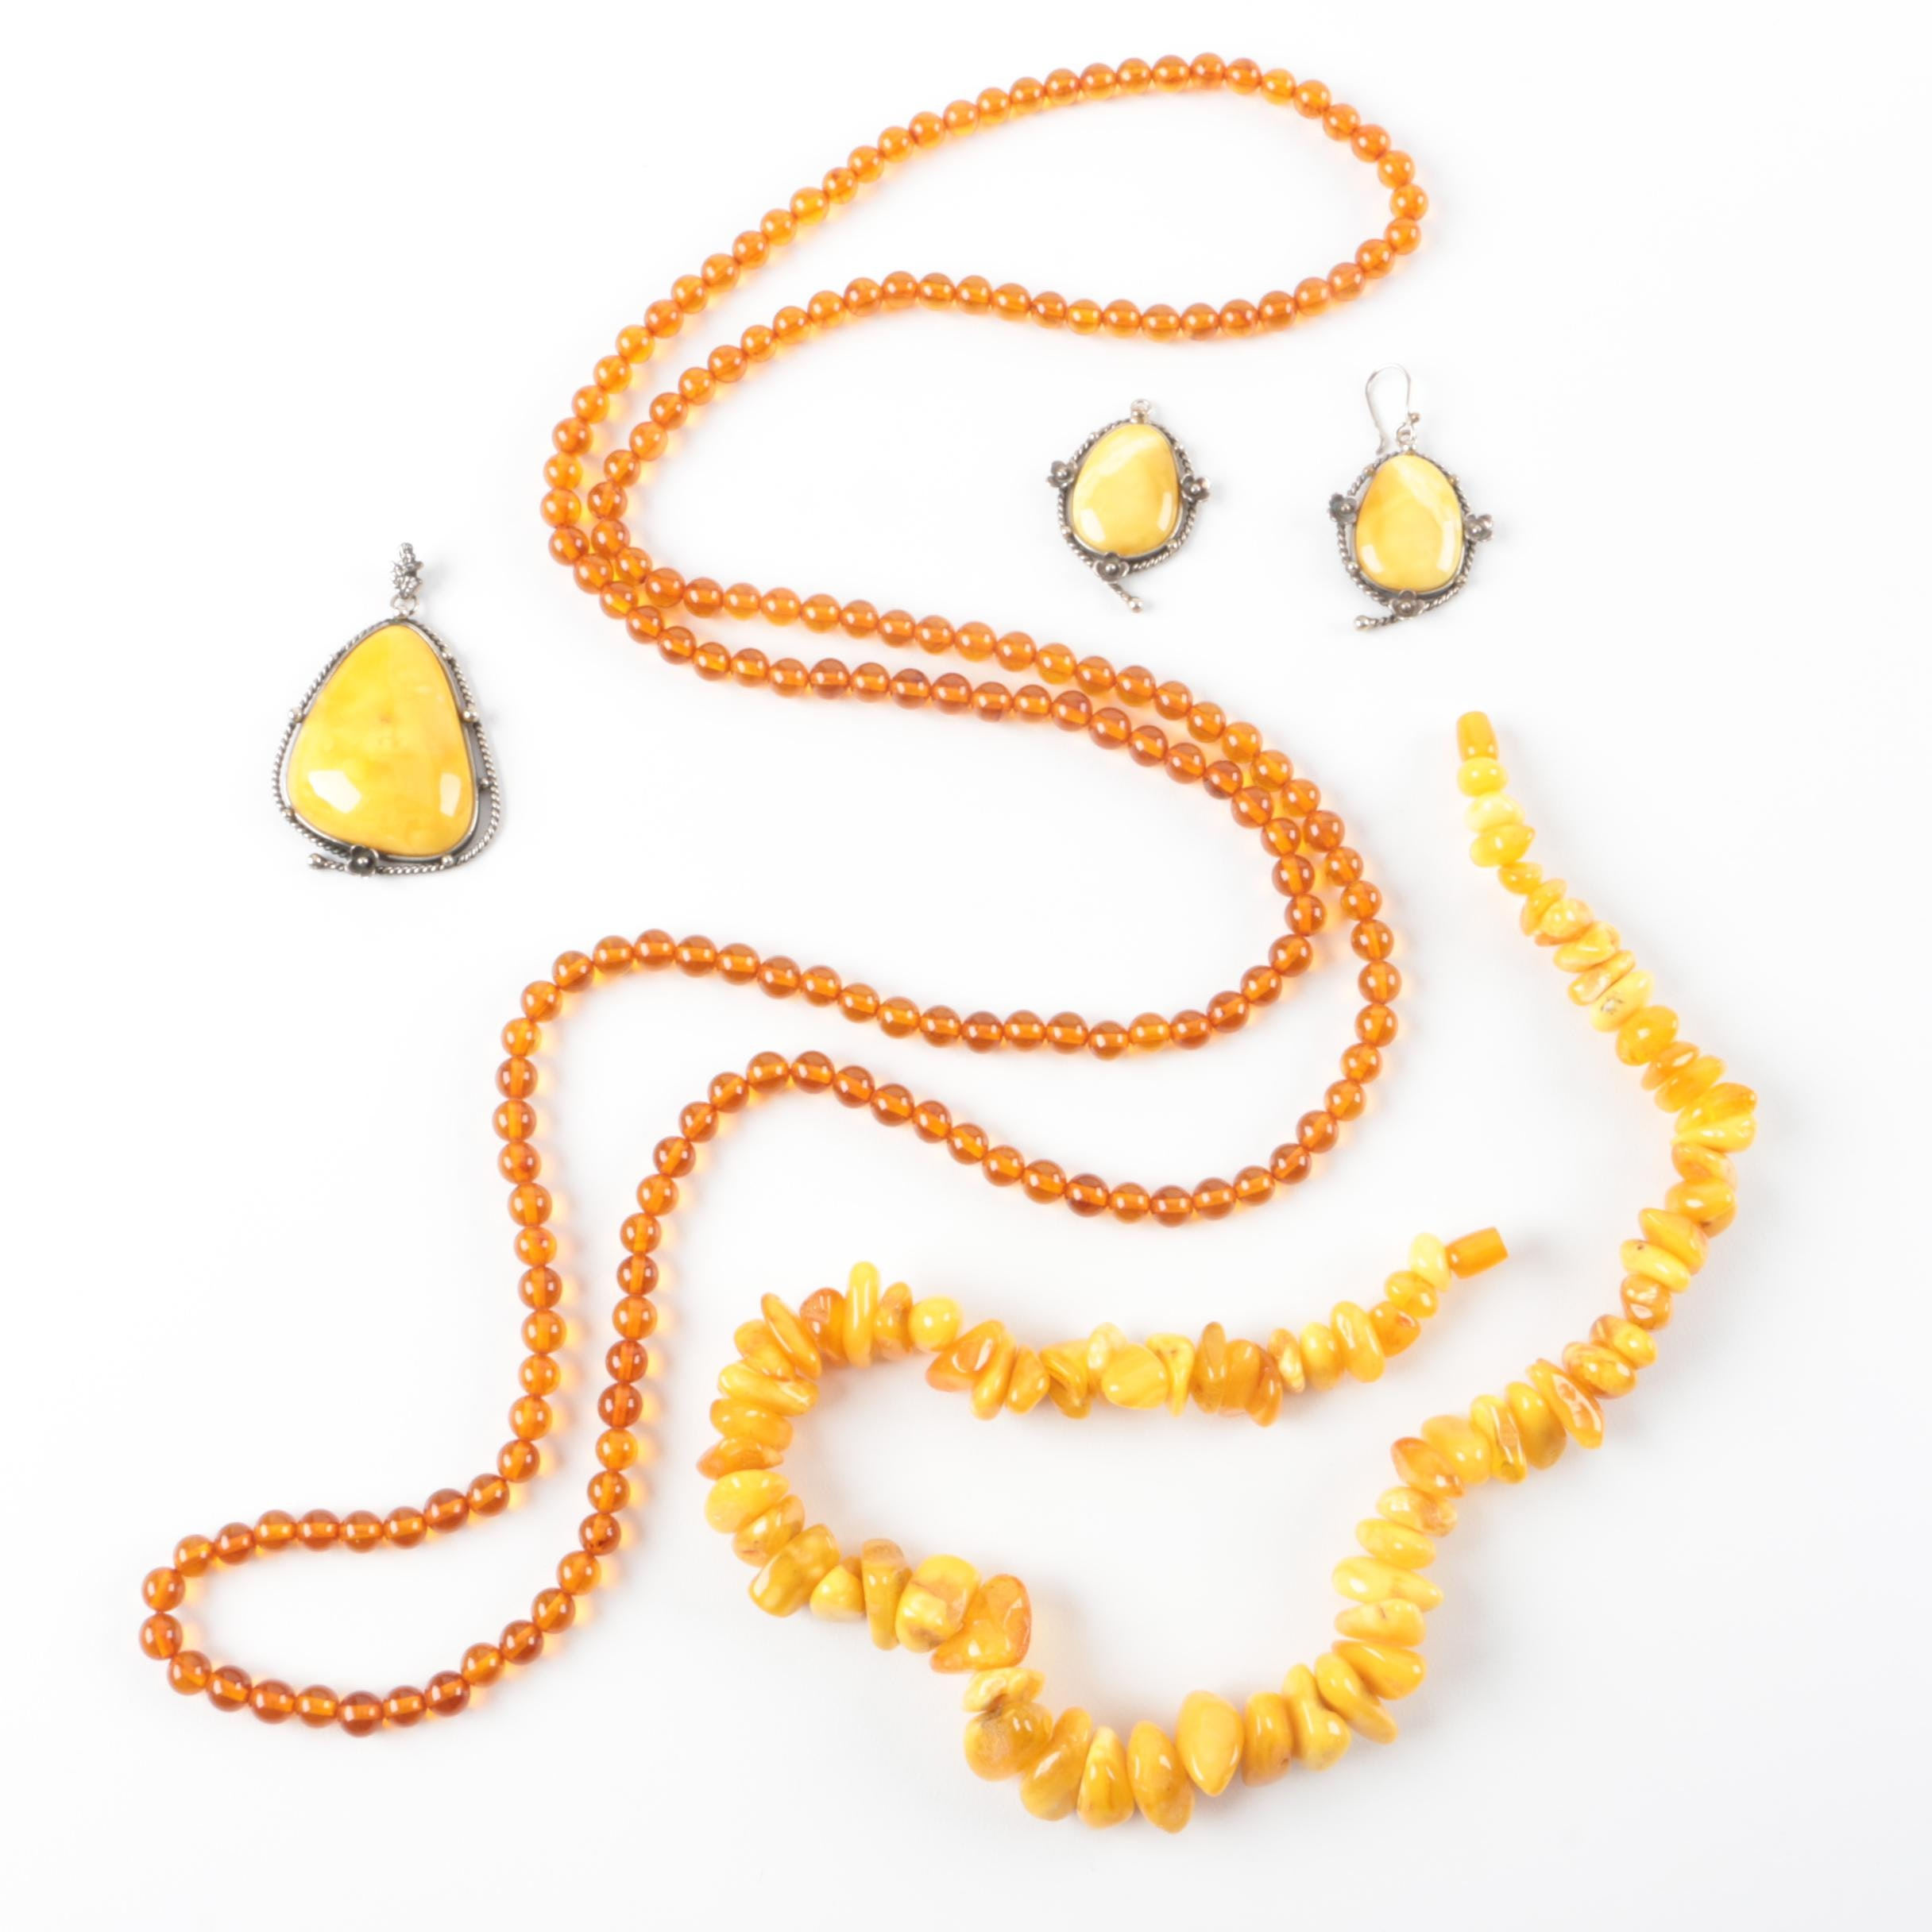 Amber and Mutton Fat Amber Jewelry